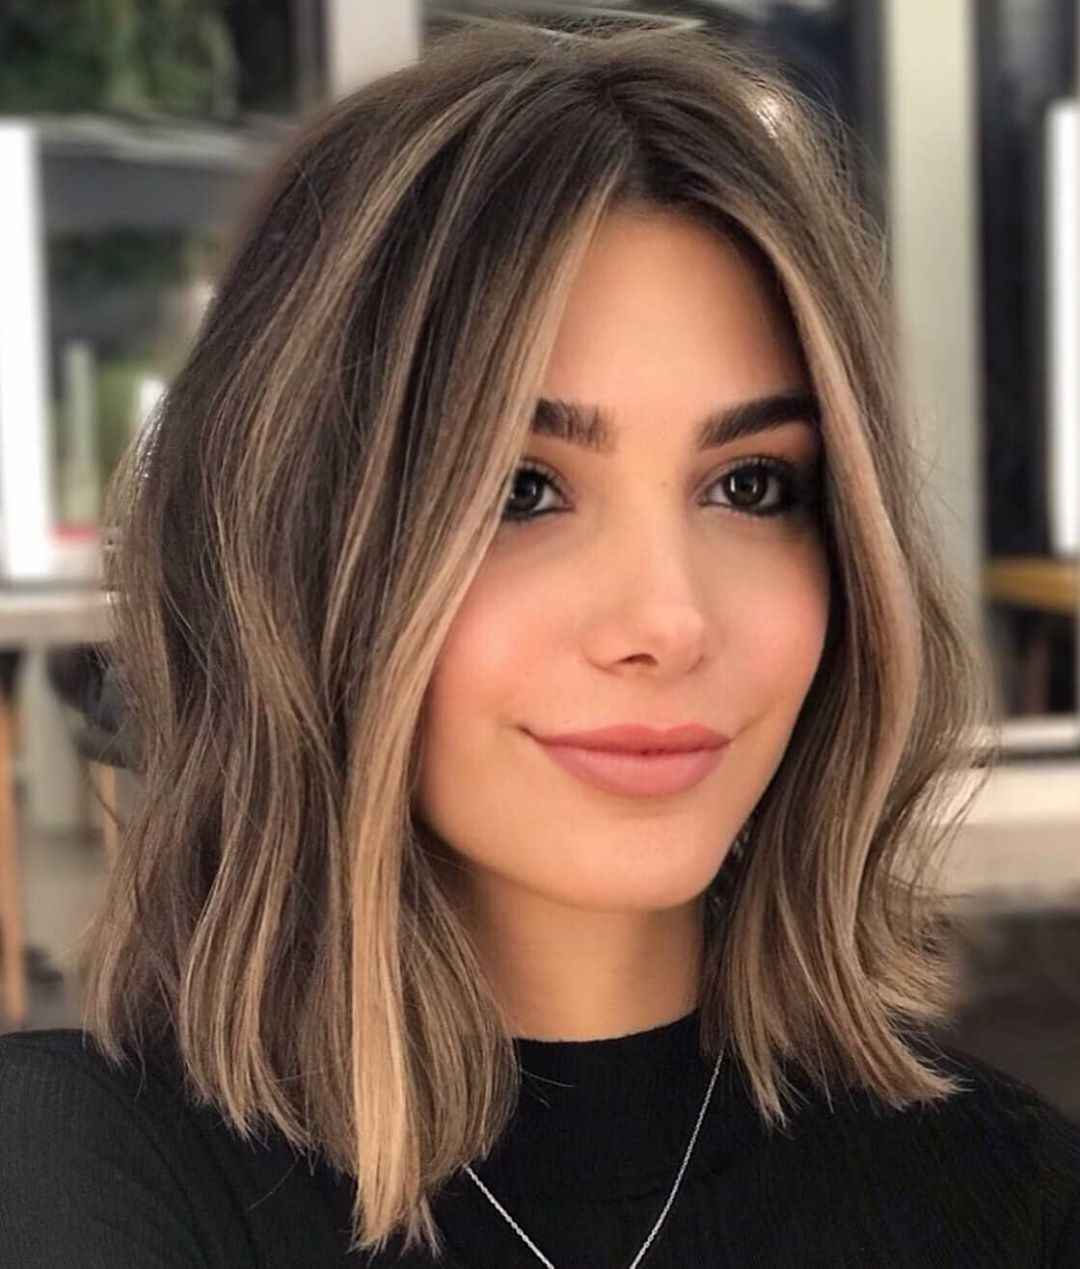 Behindthechair Com S Instagram Photo Lighter Pieces Look Lighter Next To Dark In 2020 Hair Styles Brown Hair With Blonde Highlights Highlights Brown Hair Short